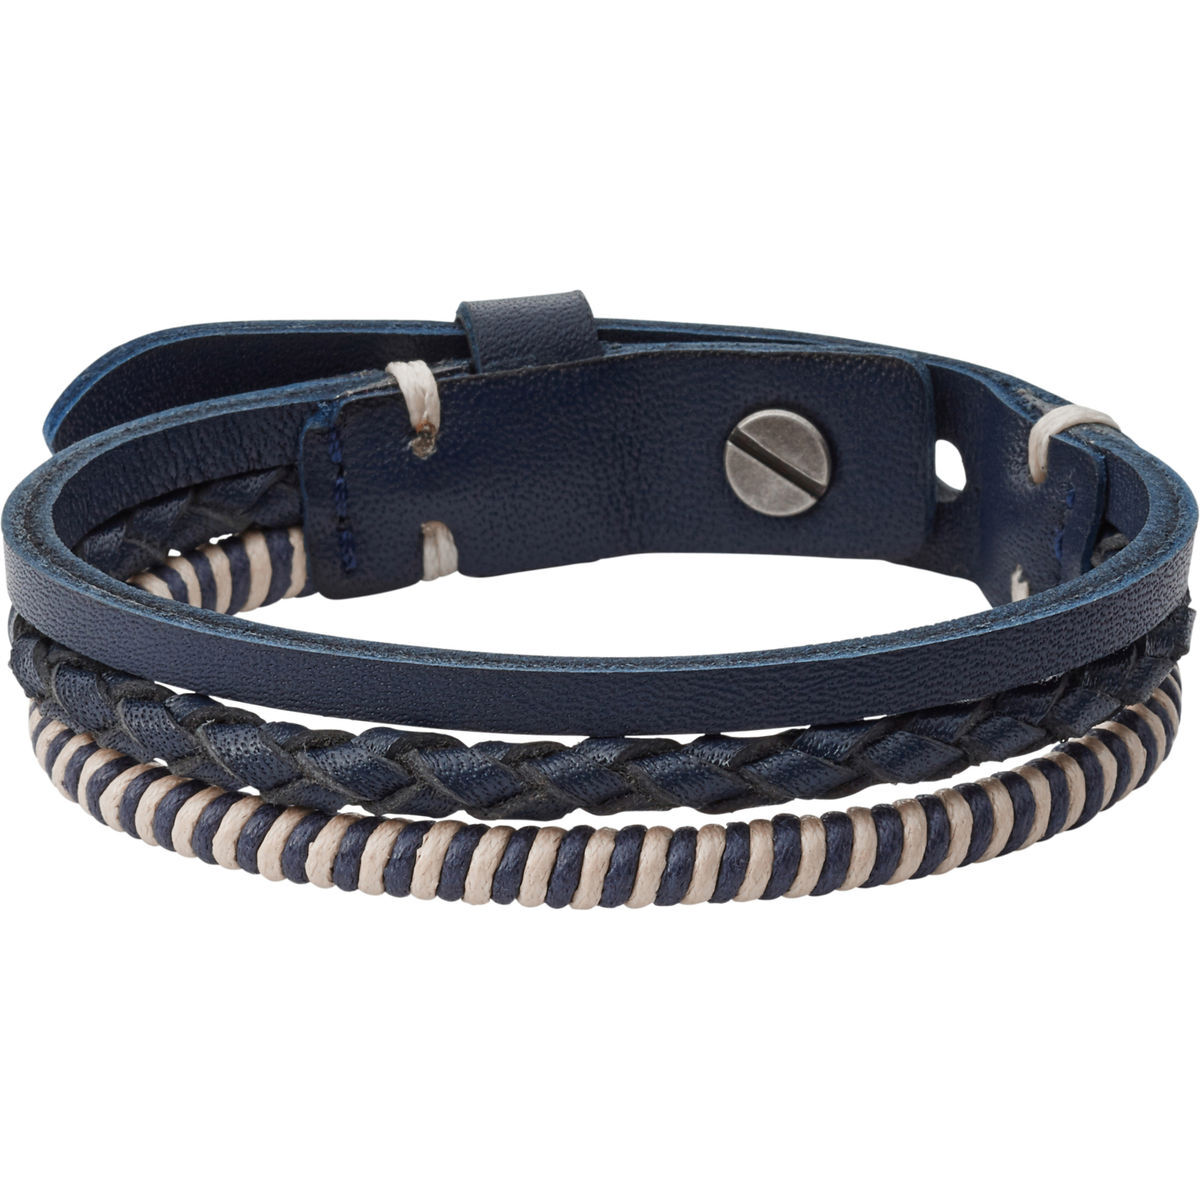 You searched for: herren armband! Etsy is the home to thousands of handmade, vintage, and one-of-a-kind products and gifts related to your search. No matter what you're looking for or where you are in the world, our global marketplace of sellers can help you find unique and affordable options. Let's get started!